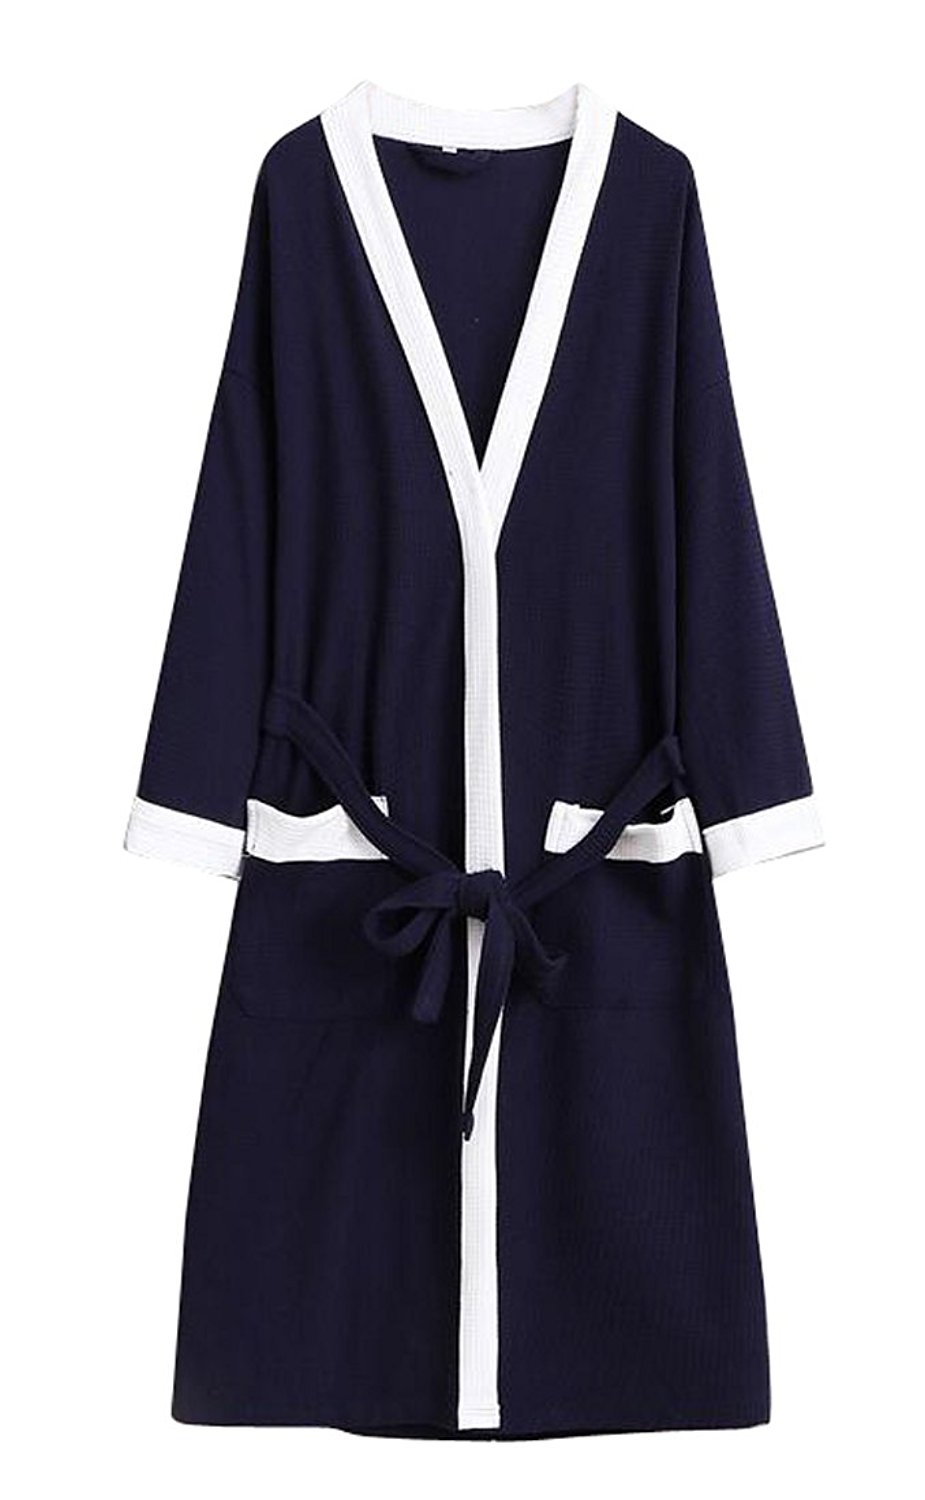 a45c89dae1 Get Quotations · ARTFFEL-Men Basic Waffle Kimono Robes Lightweight Terry  Cloth Spa Bathrobe